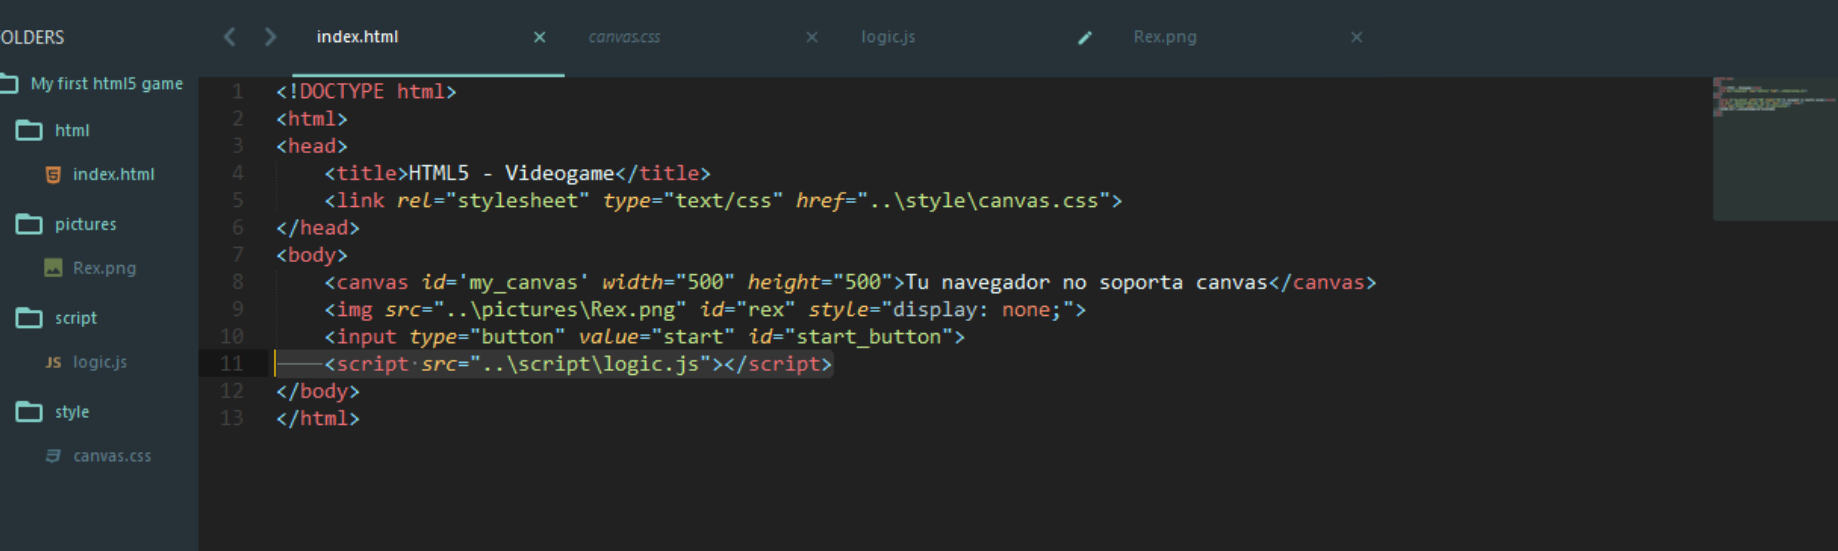 Link CSS and Js Files With an HTML File - Better Programming - Medium